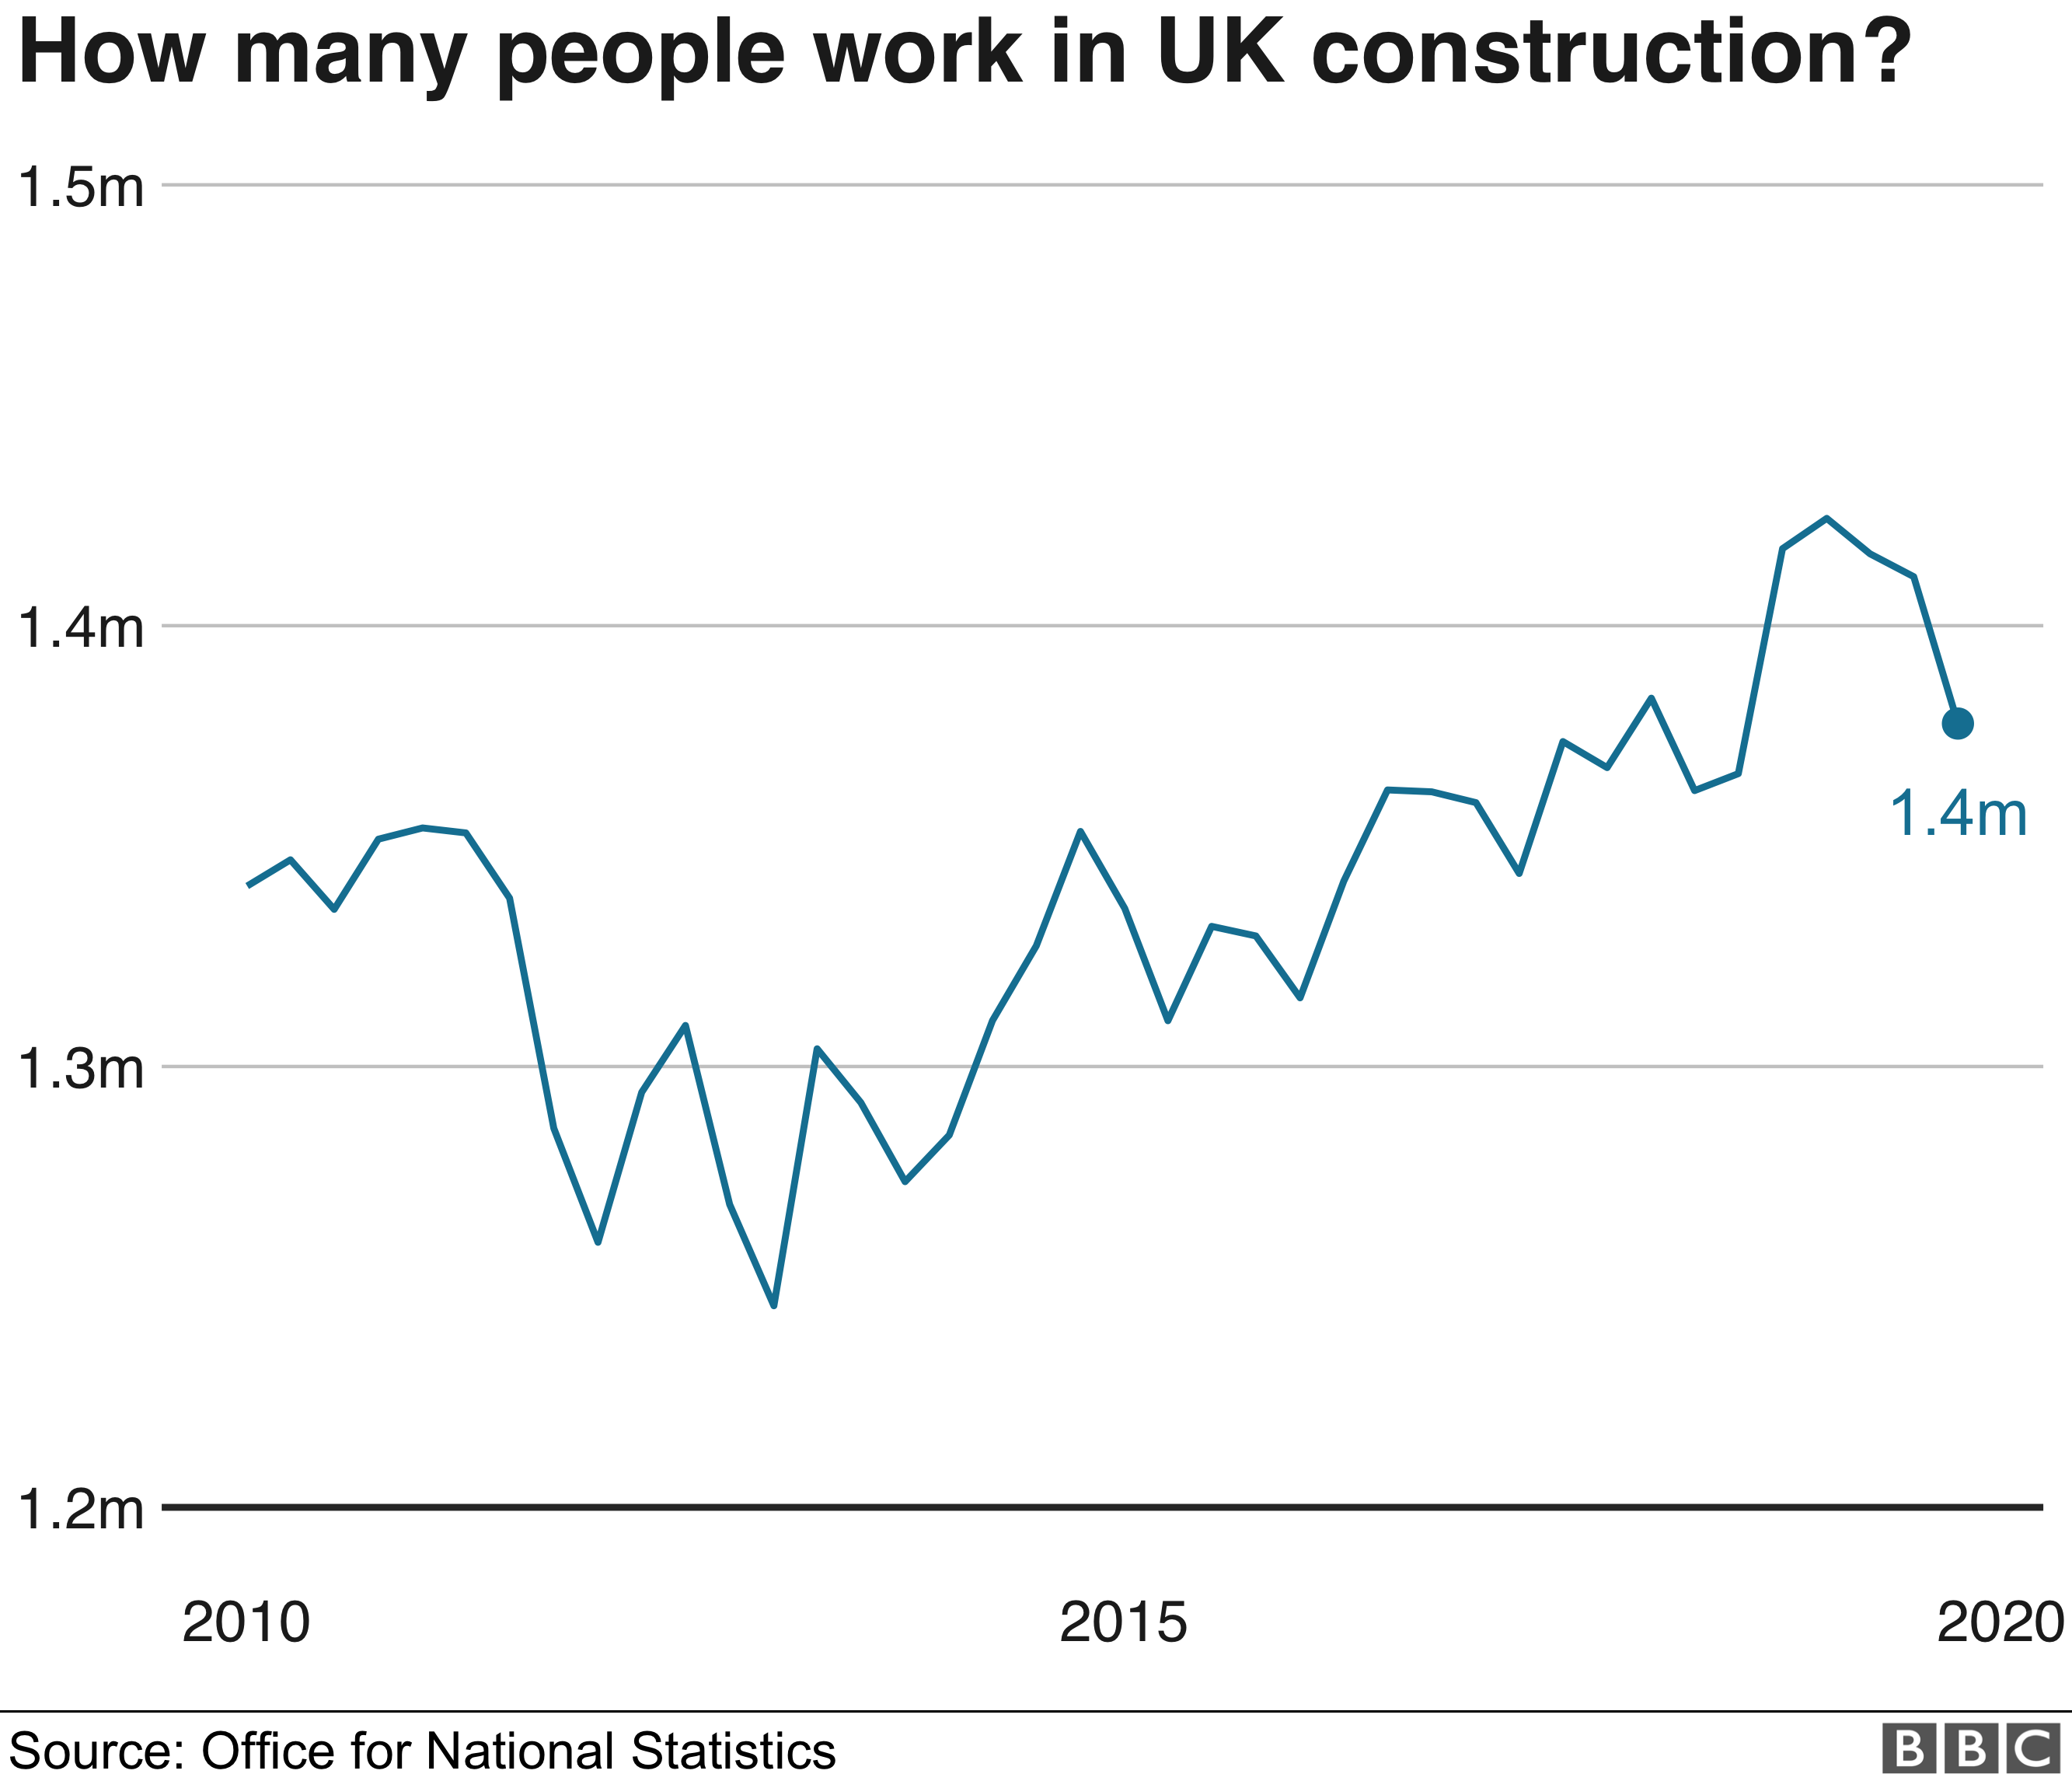 Chart showing there are currently 1.4 million construction workers in the UK